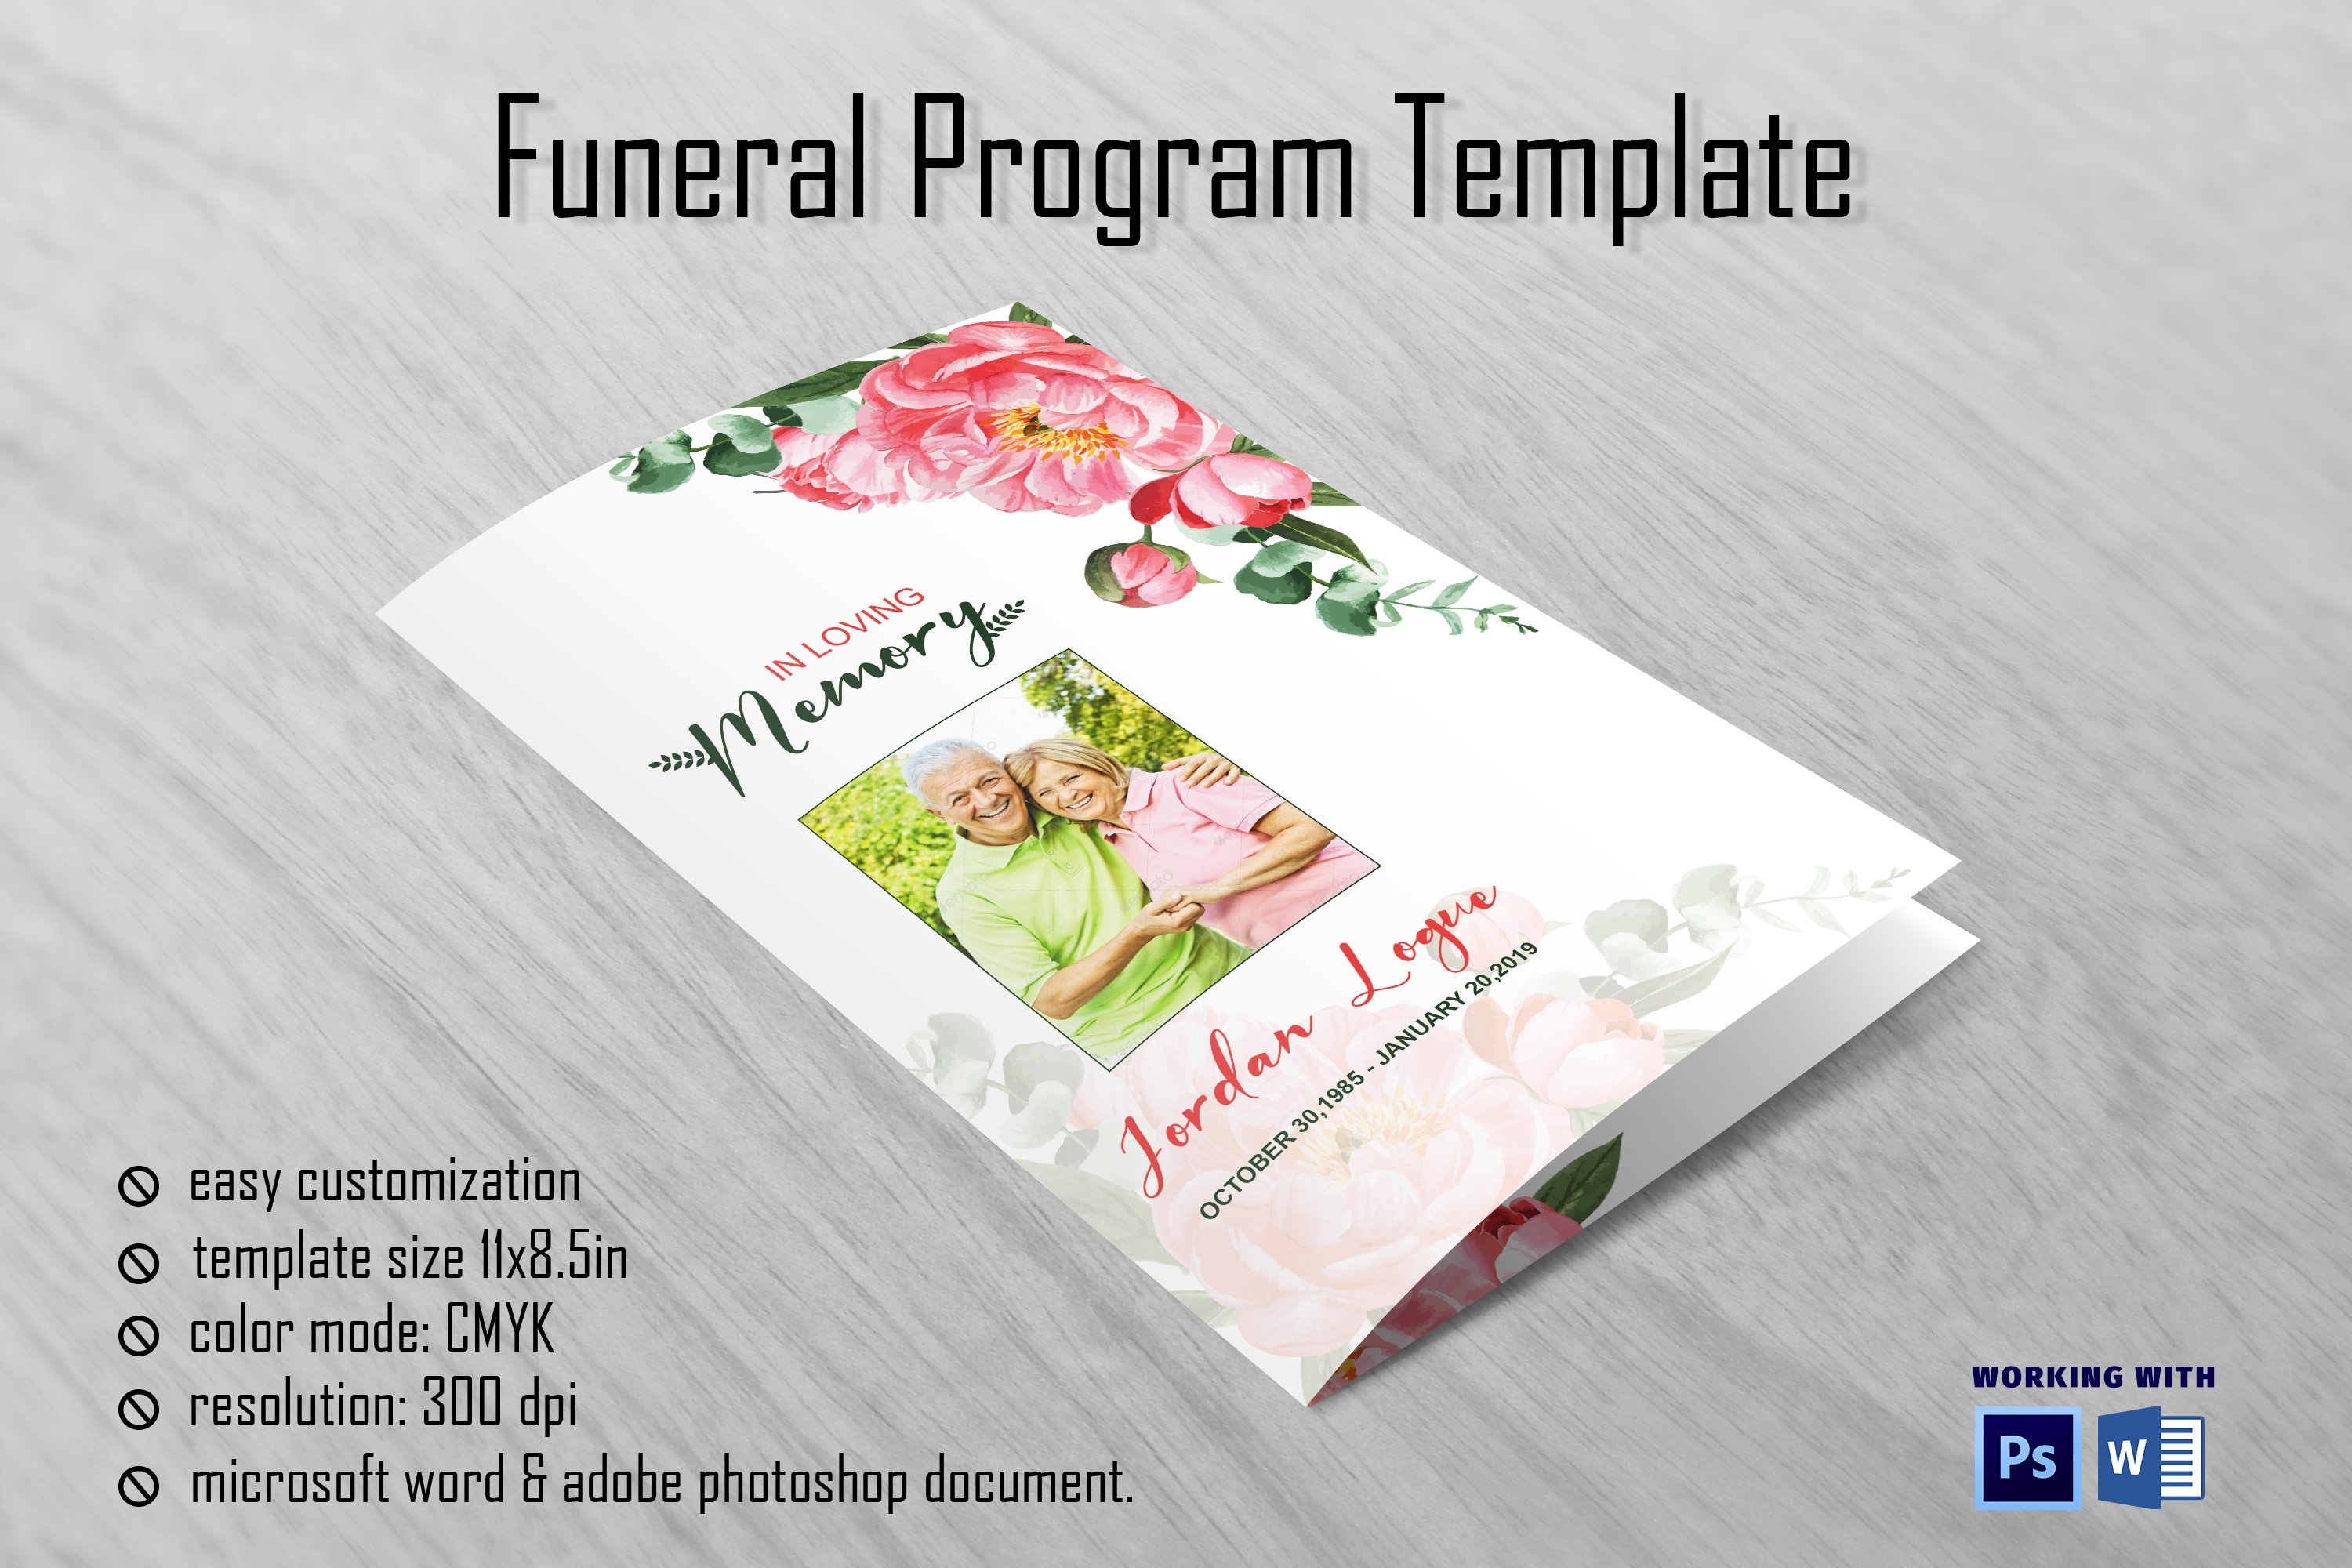 Resolution For Funeral Template from cmkt-image-prd.freetls.fastly.net